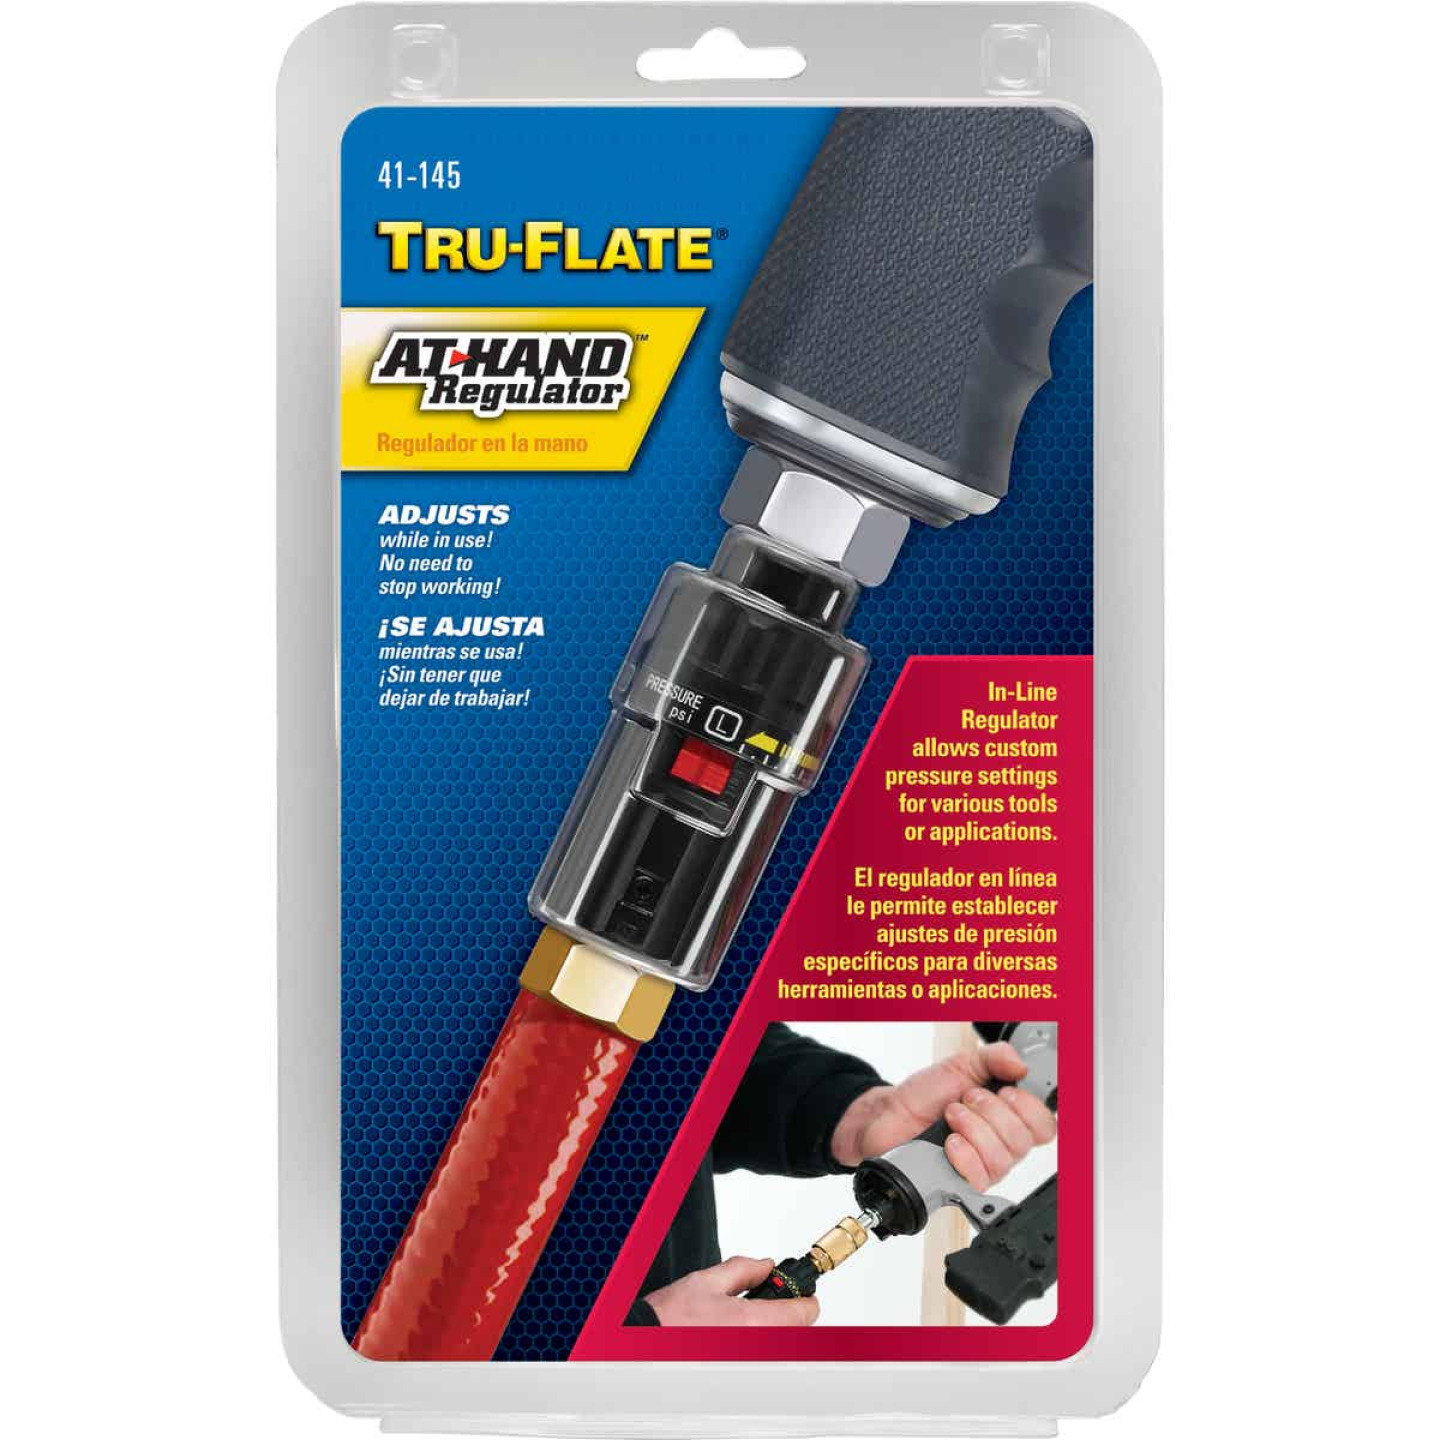 Tru-Flate At-Hand Inline Pressure Regulator Image 1